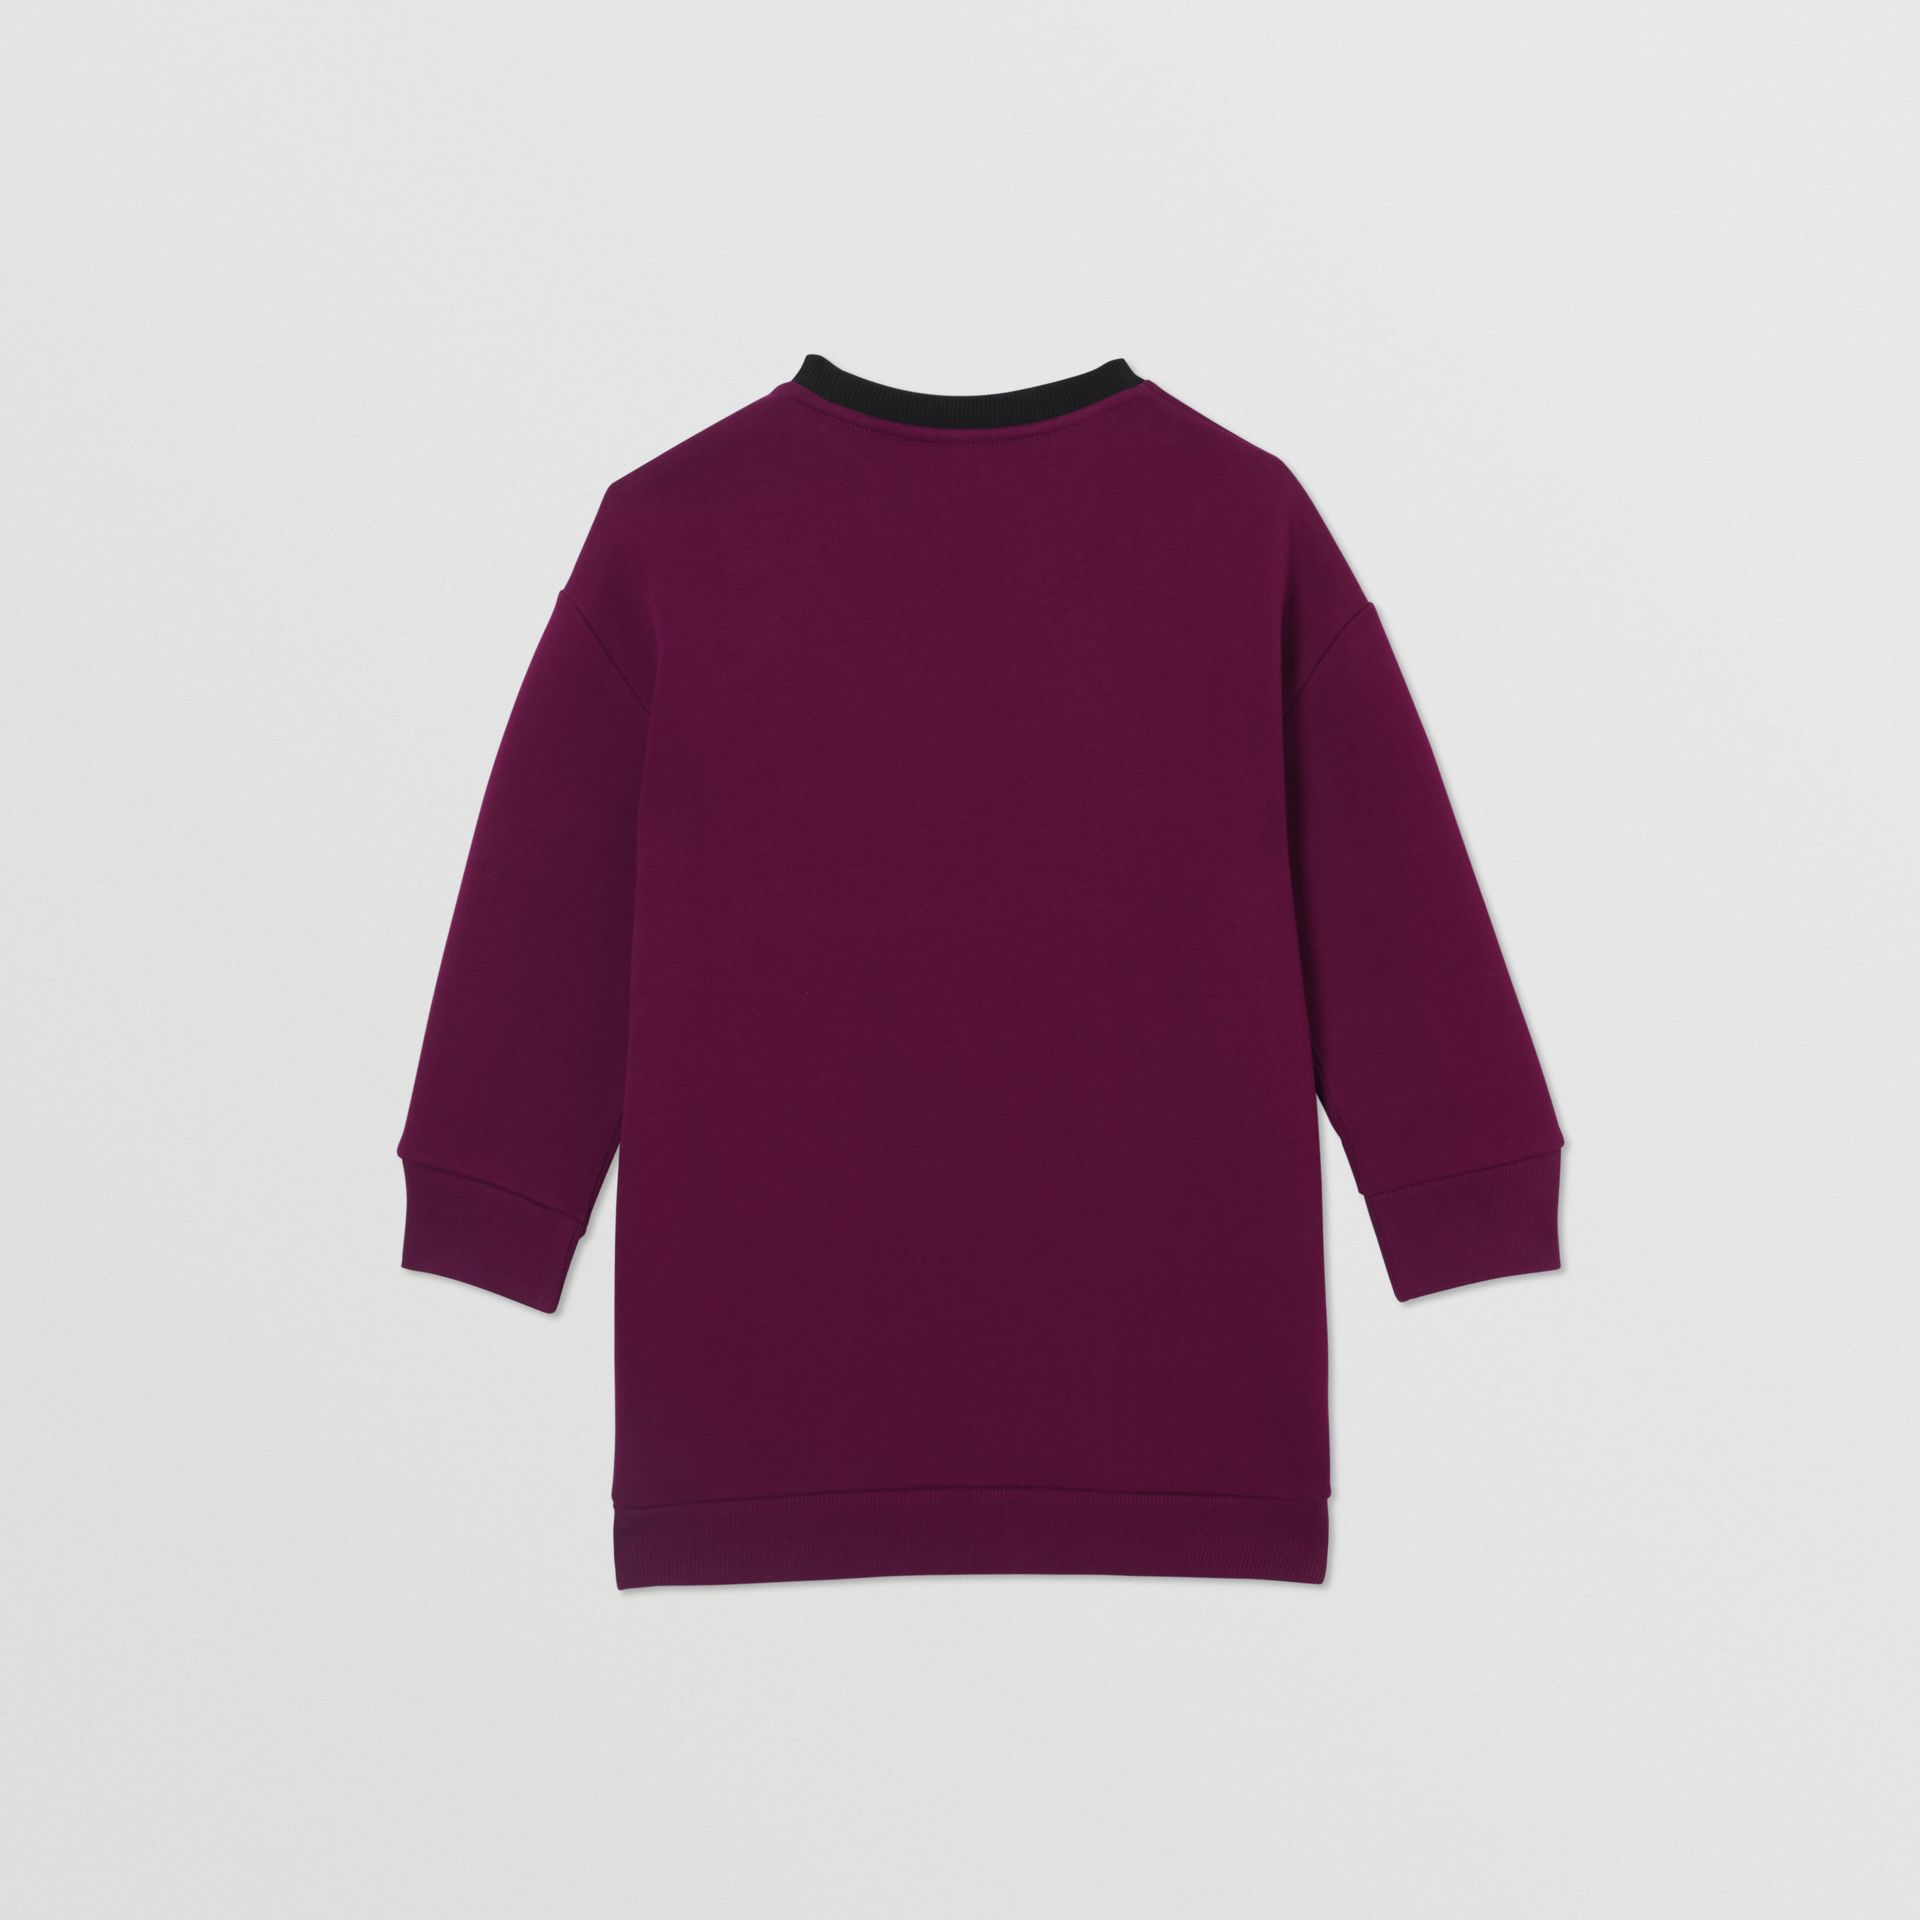 Logo Print Jersey Sweater Dress in Burgundy | Burberry - gallery image 3